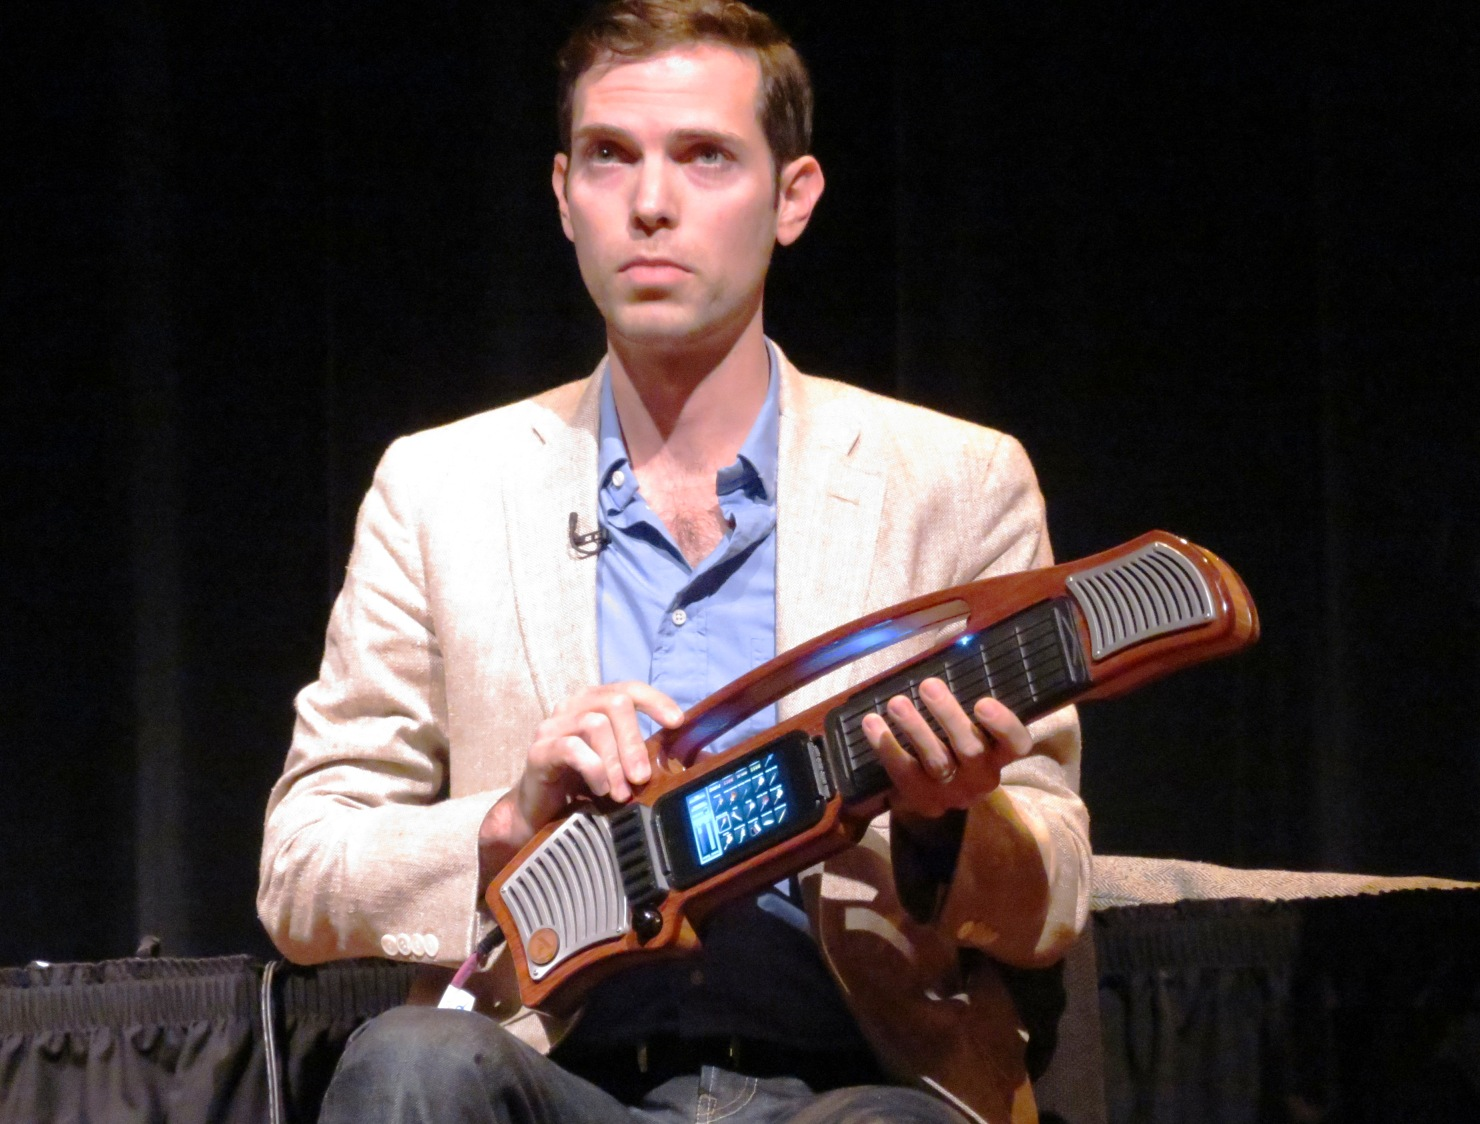 Artiphon CEO Mike Butera demos the Instrument 1 at New York Tech Meetup (photo by João-Pierre S. Ruth).